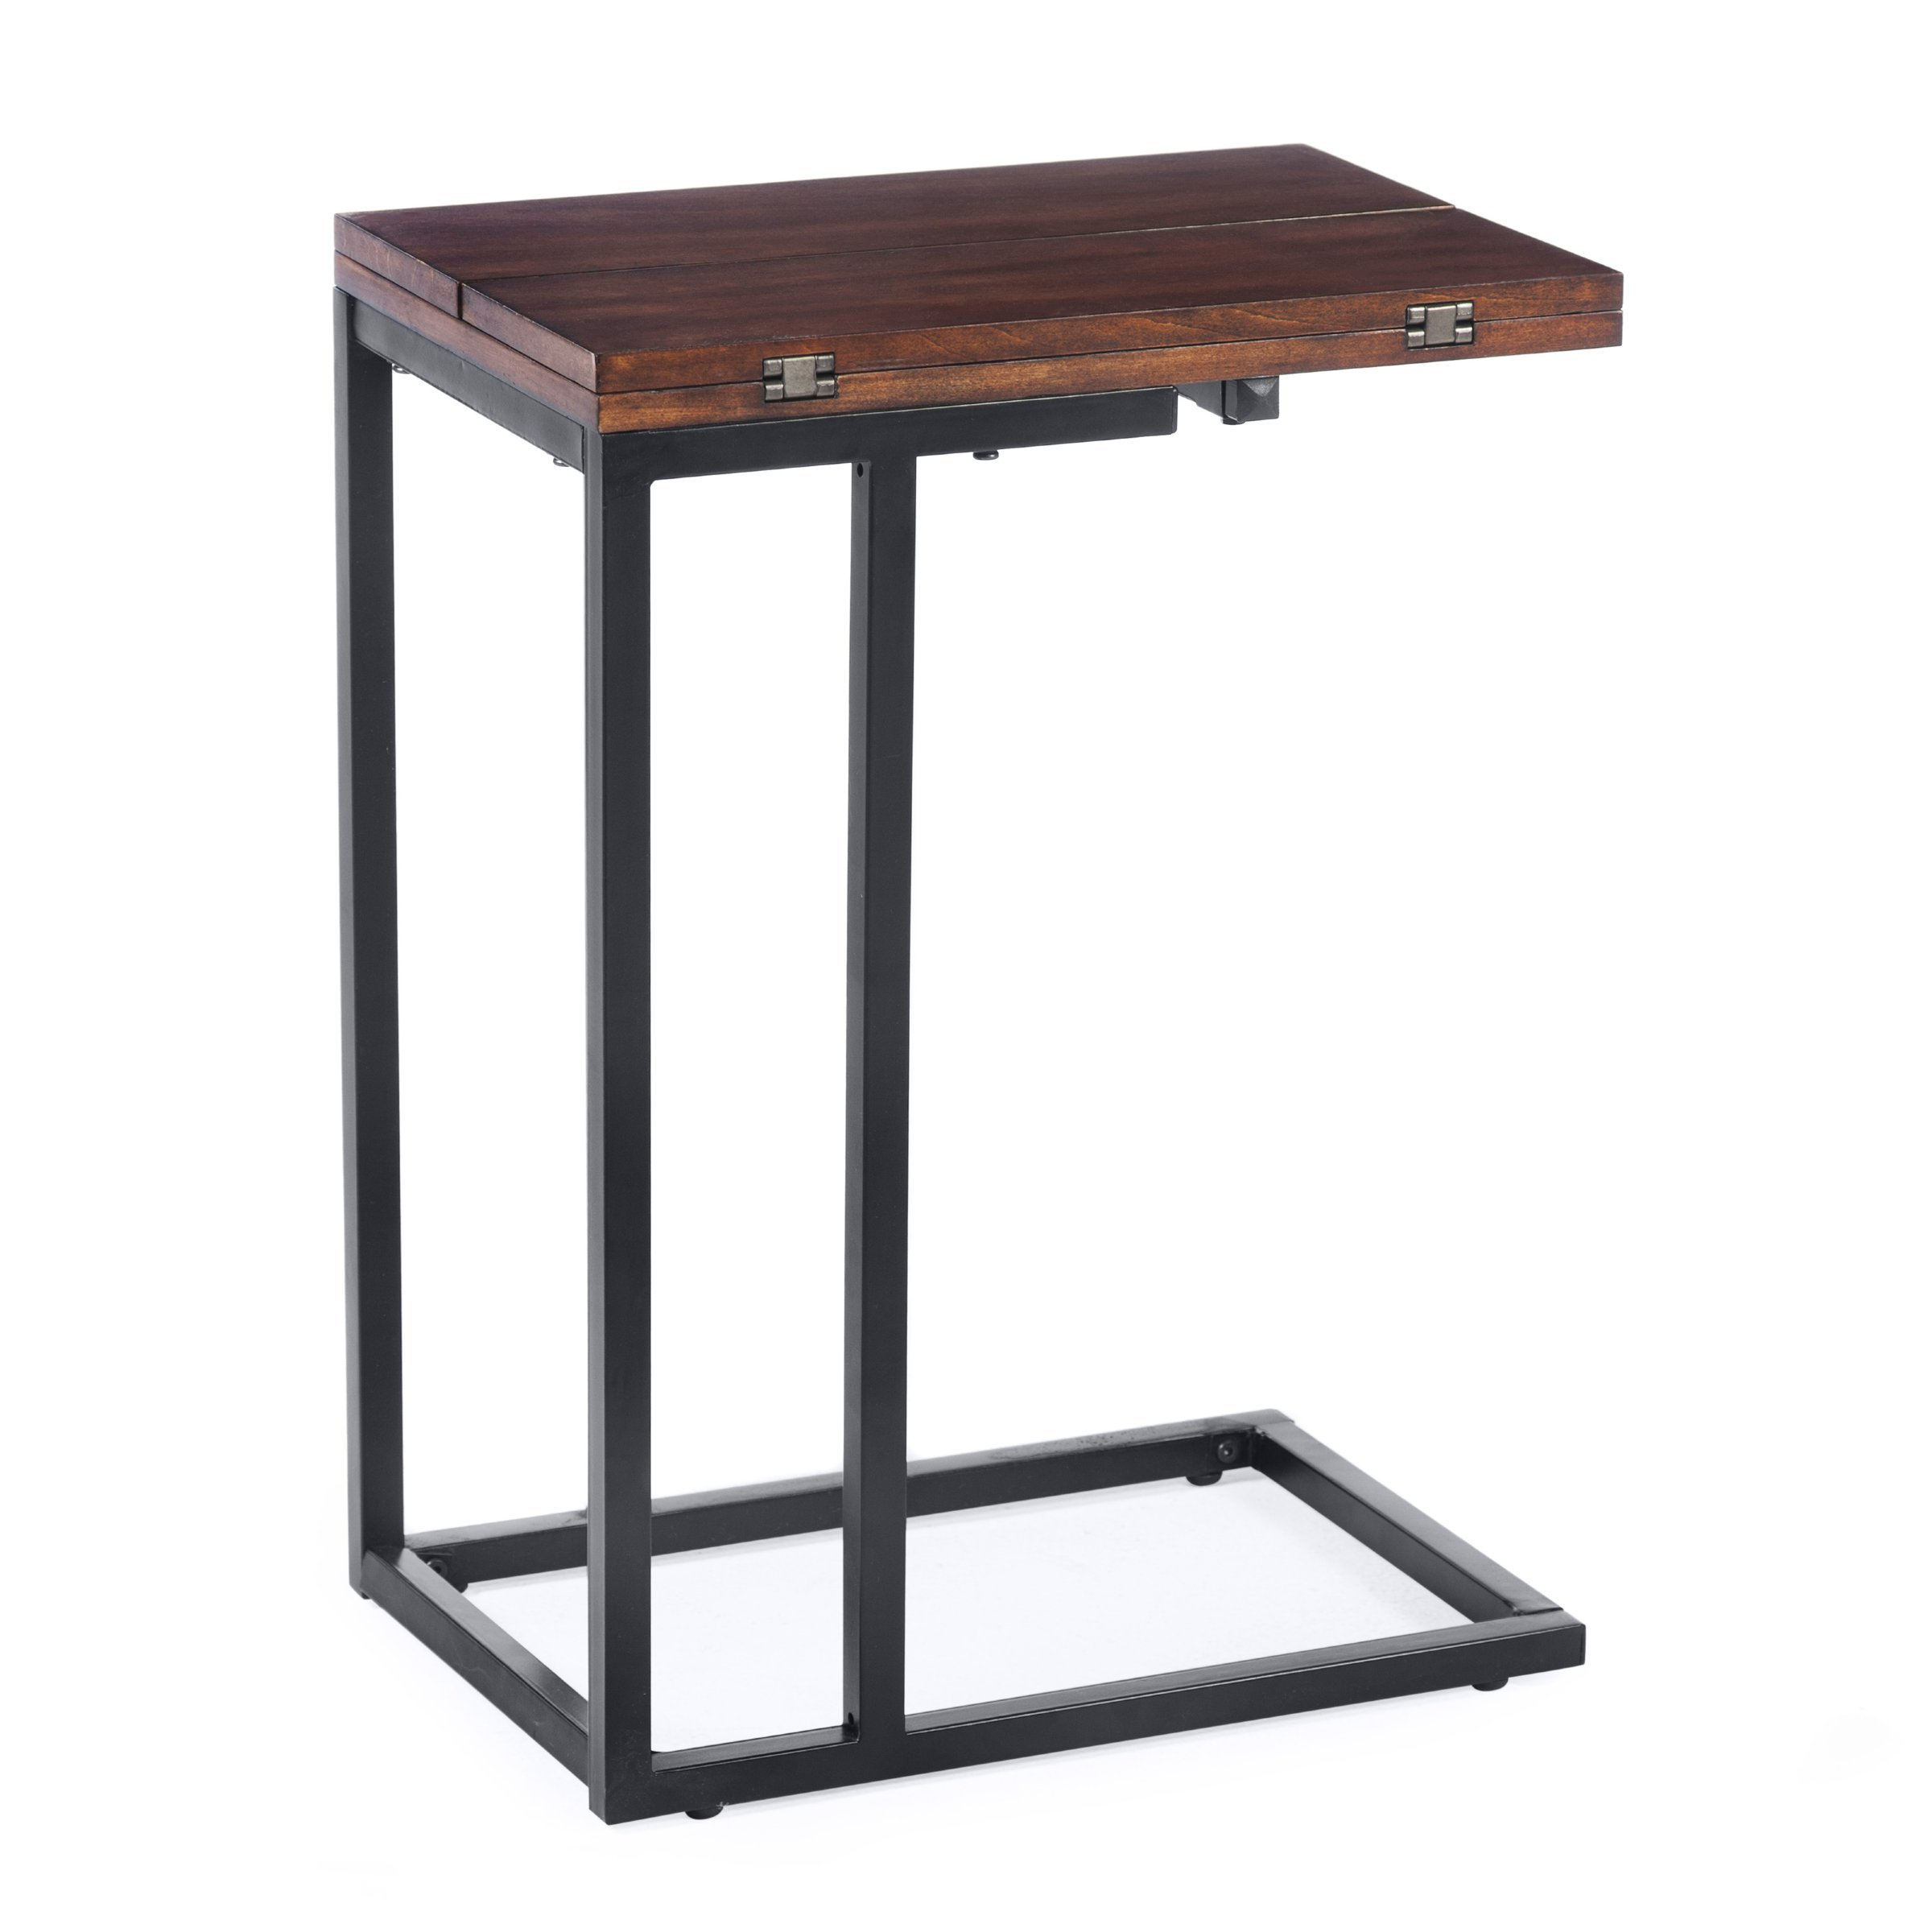 24 in. Expanding C-Table - Espresso